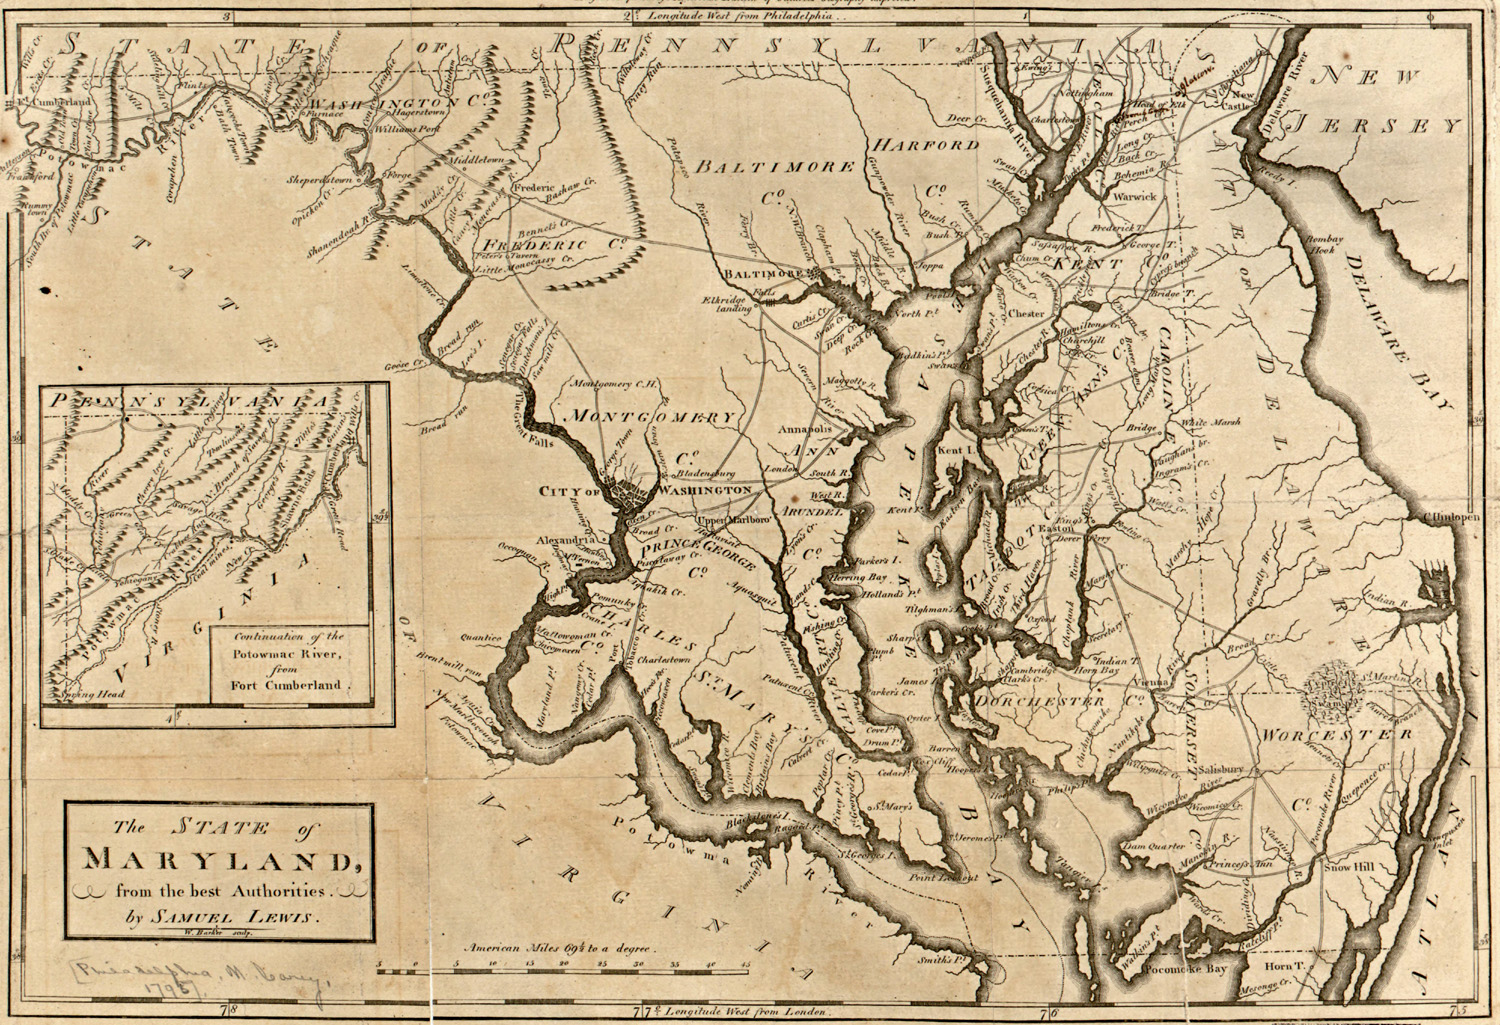 From Colonies To Revolution Map Of Historic Southern Maryland - Los angeles map wallpaper